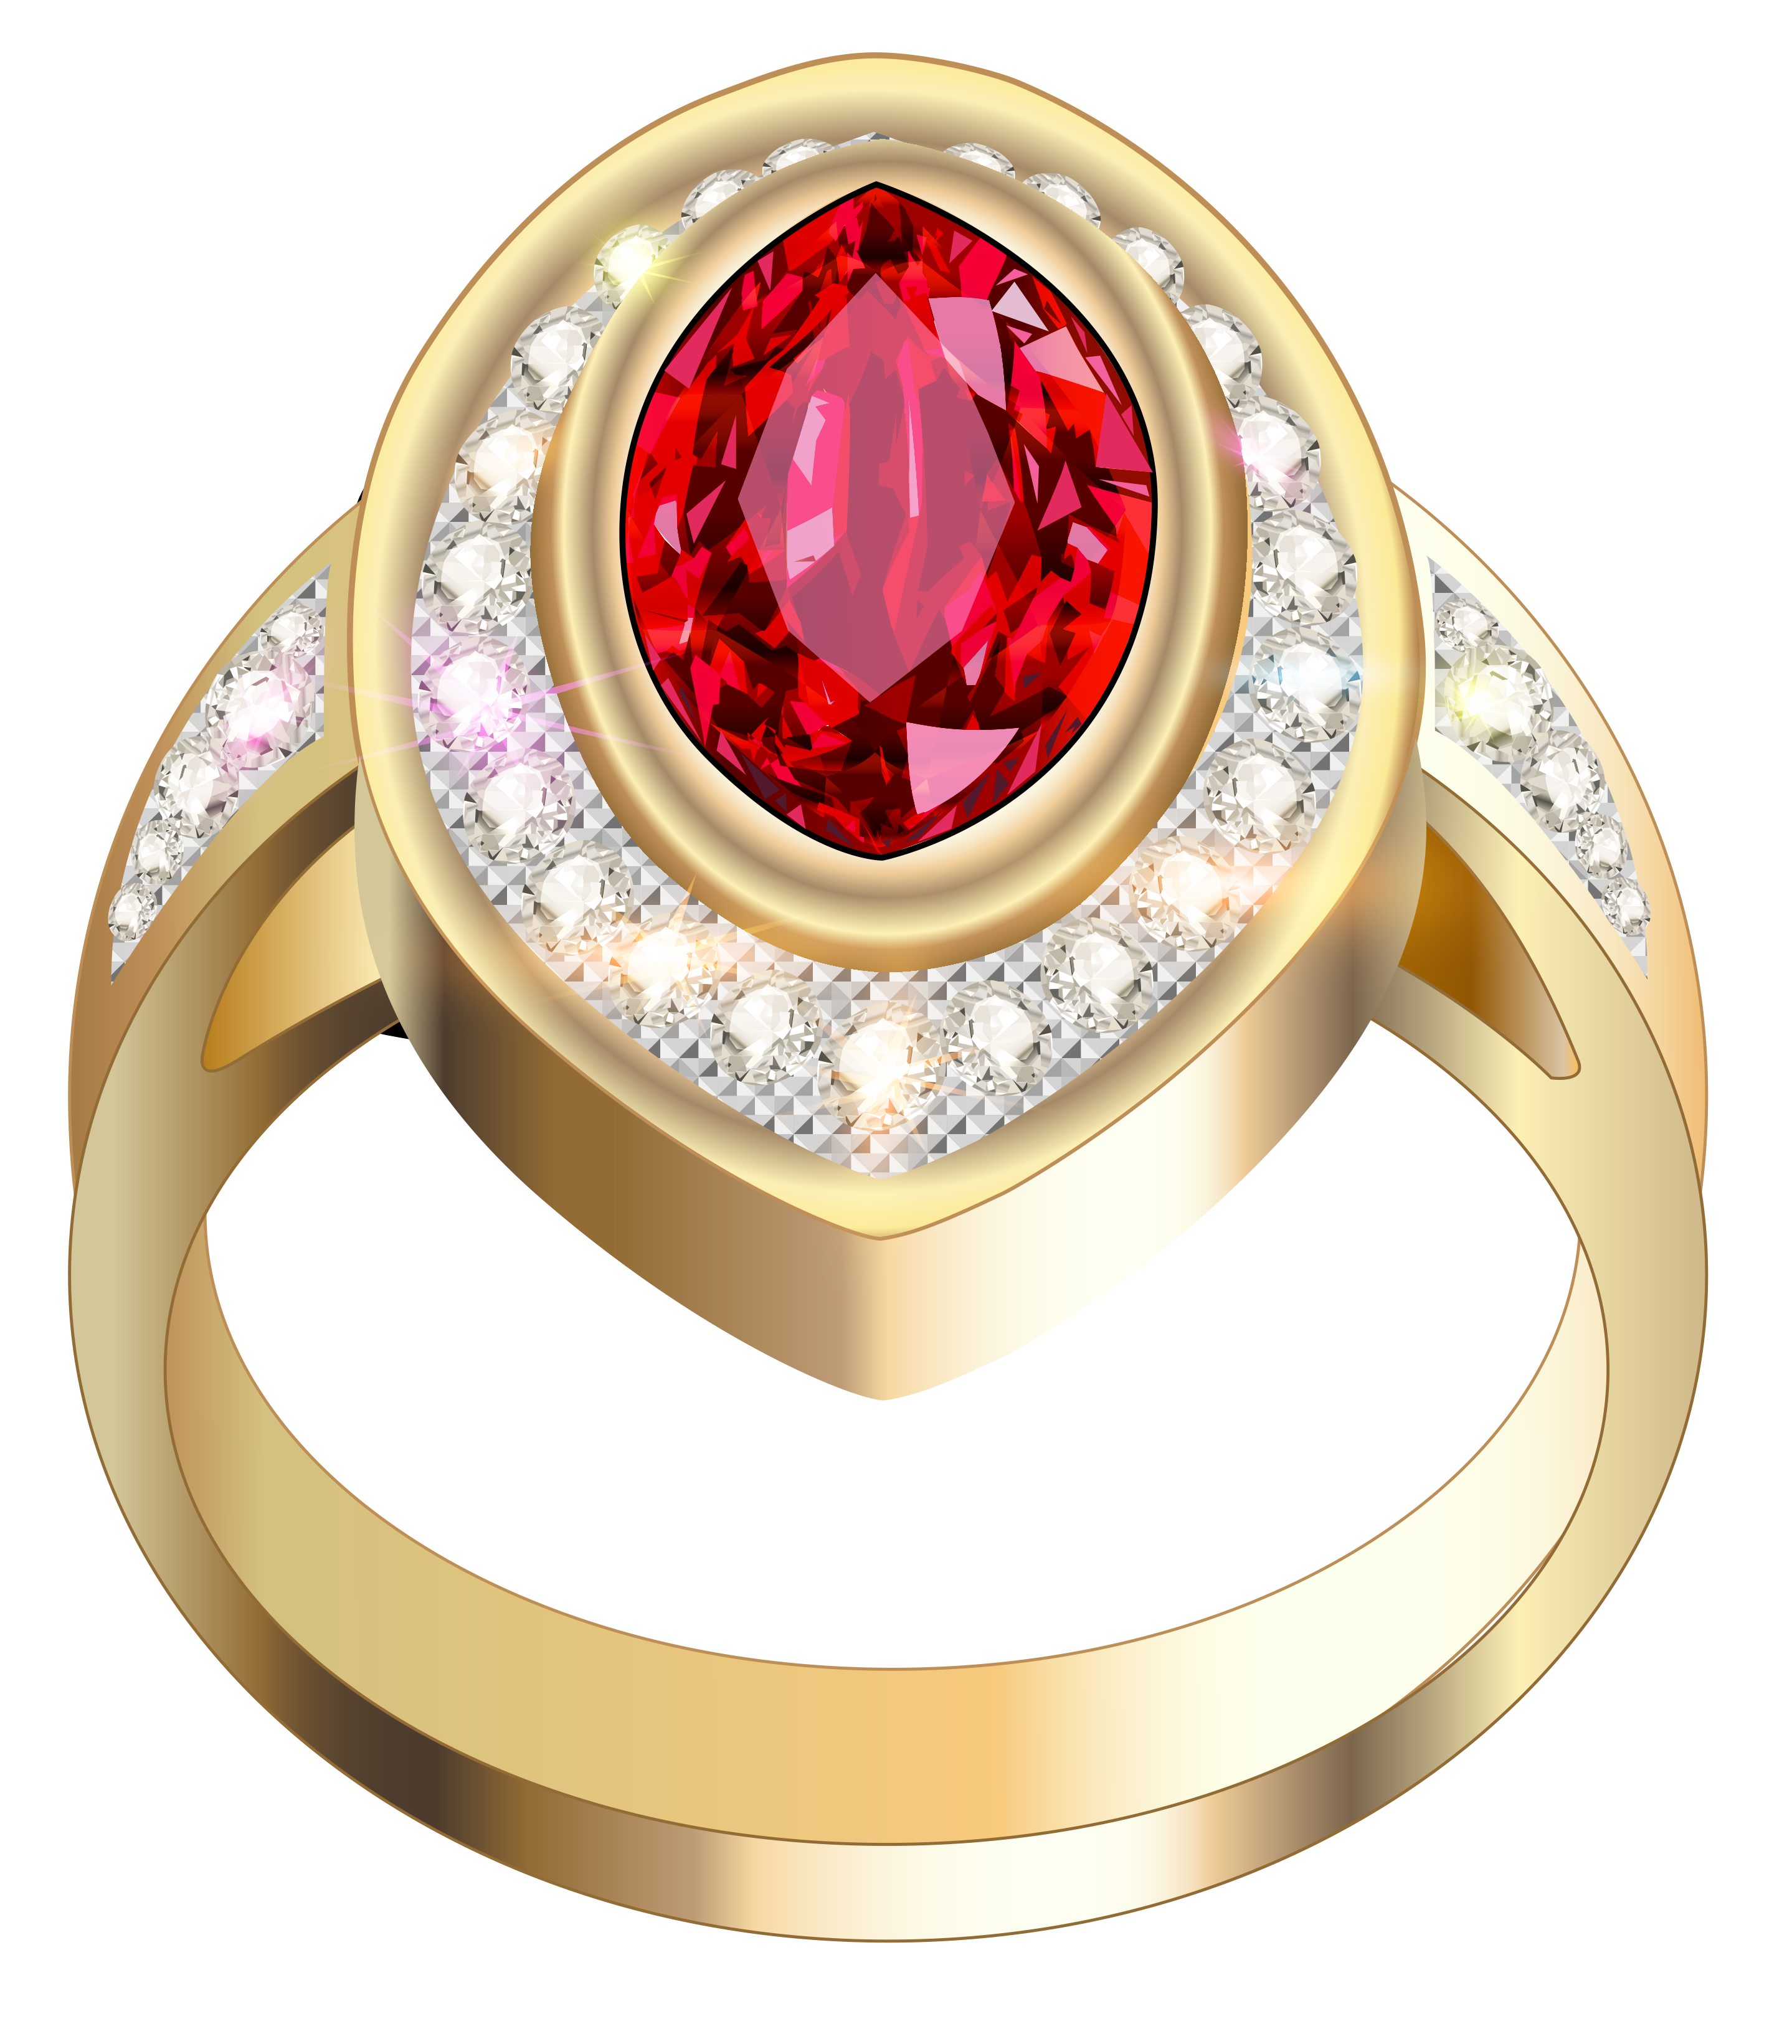 Ring clipart gold necklace #8